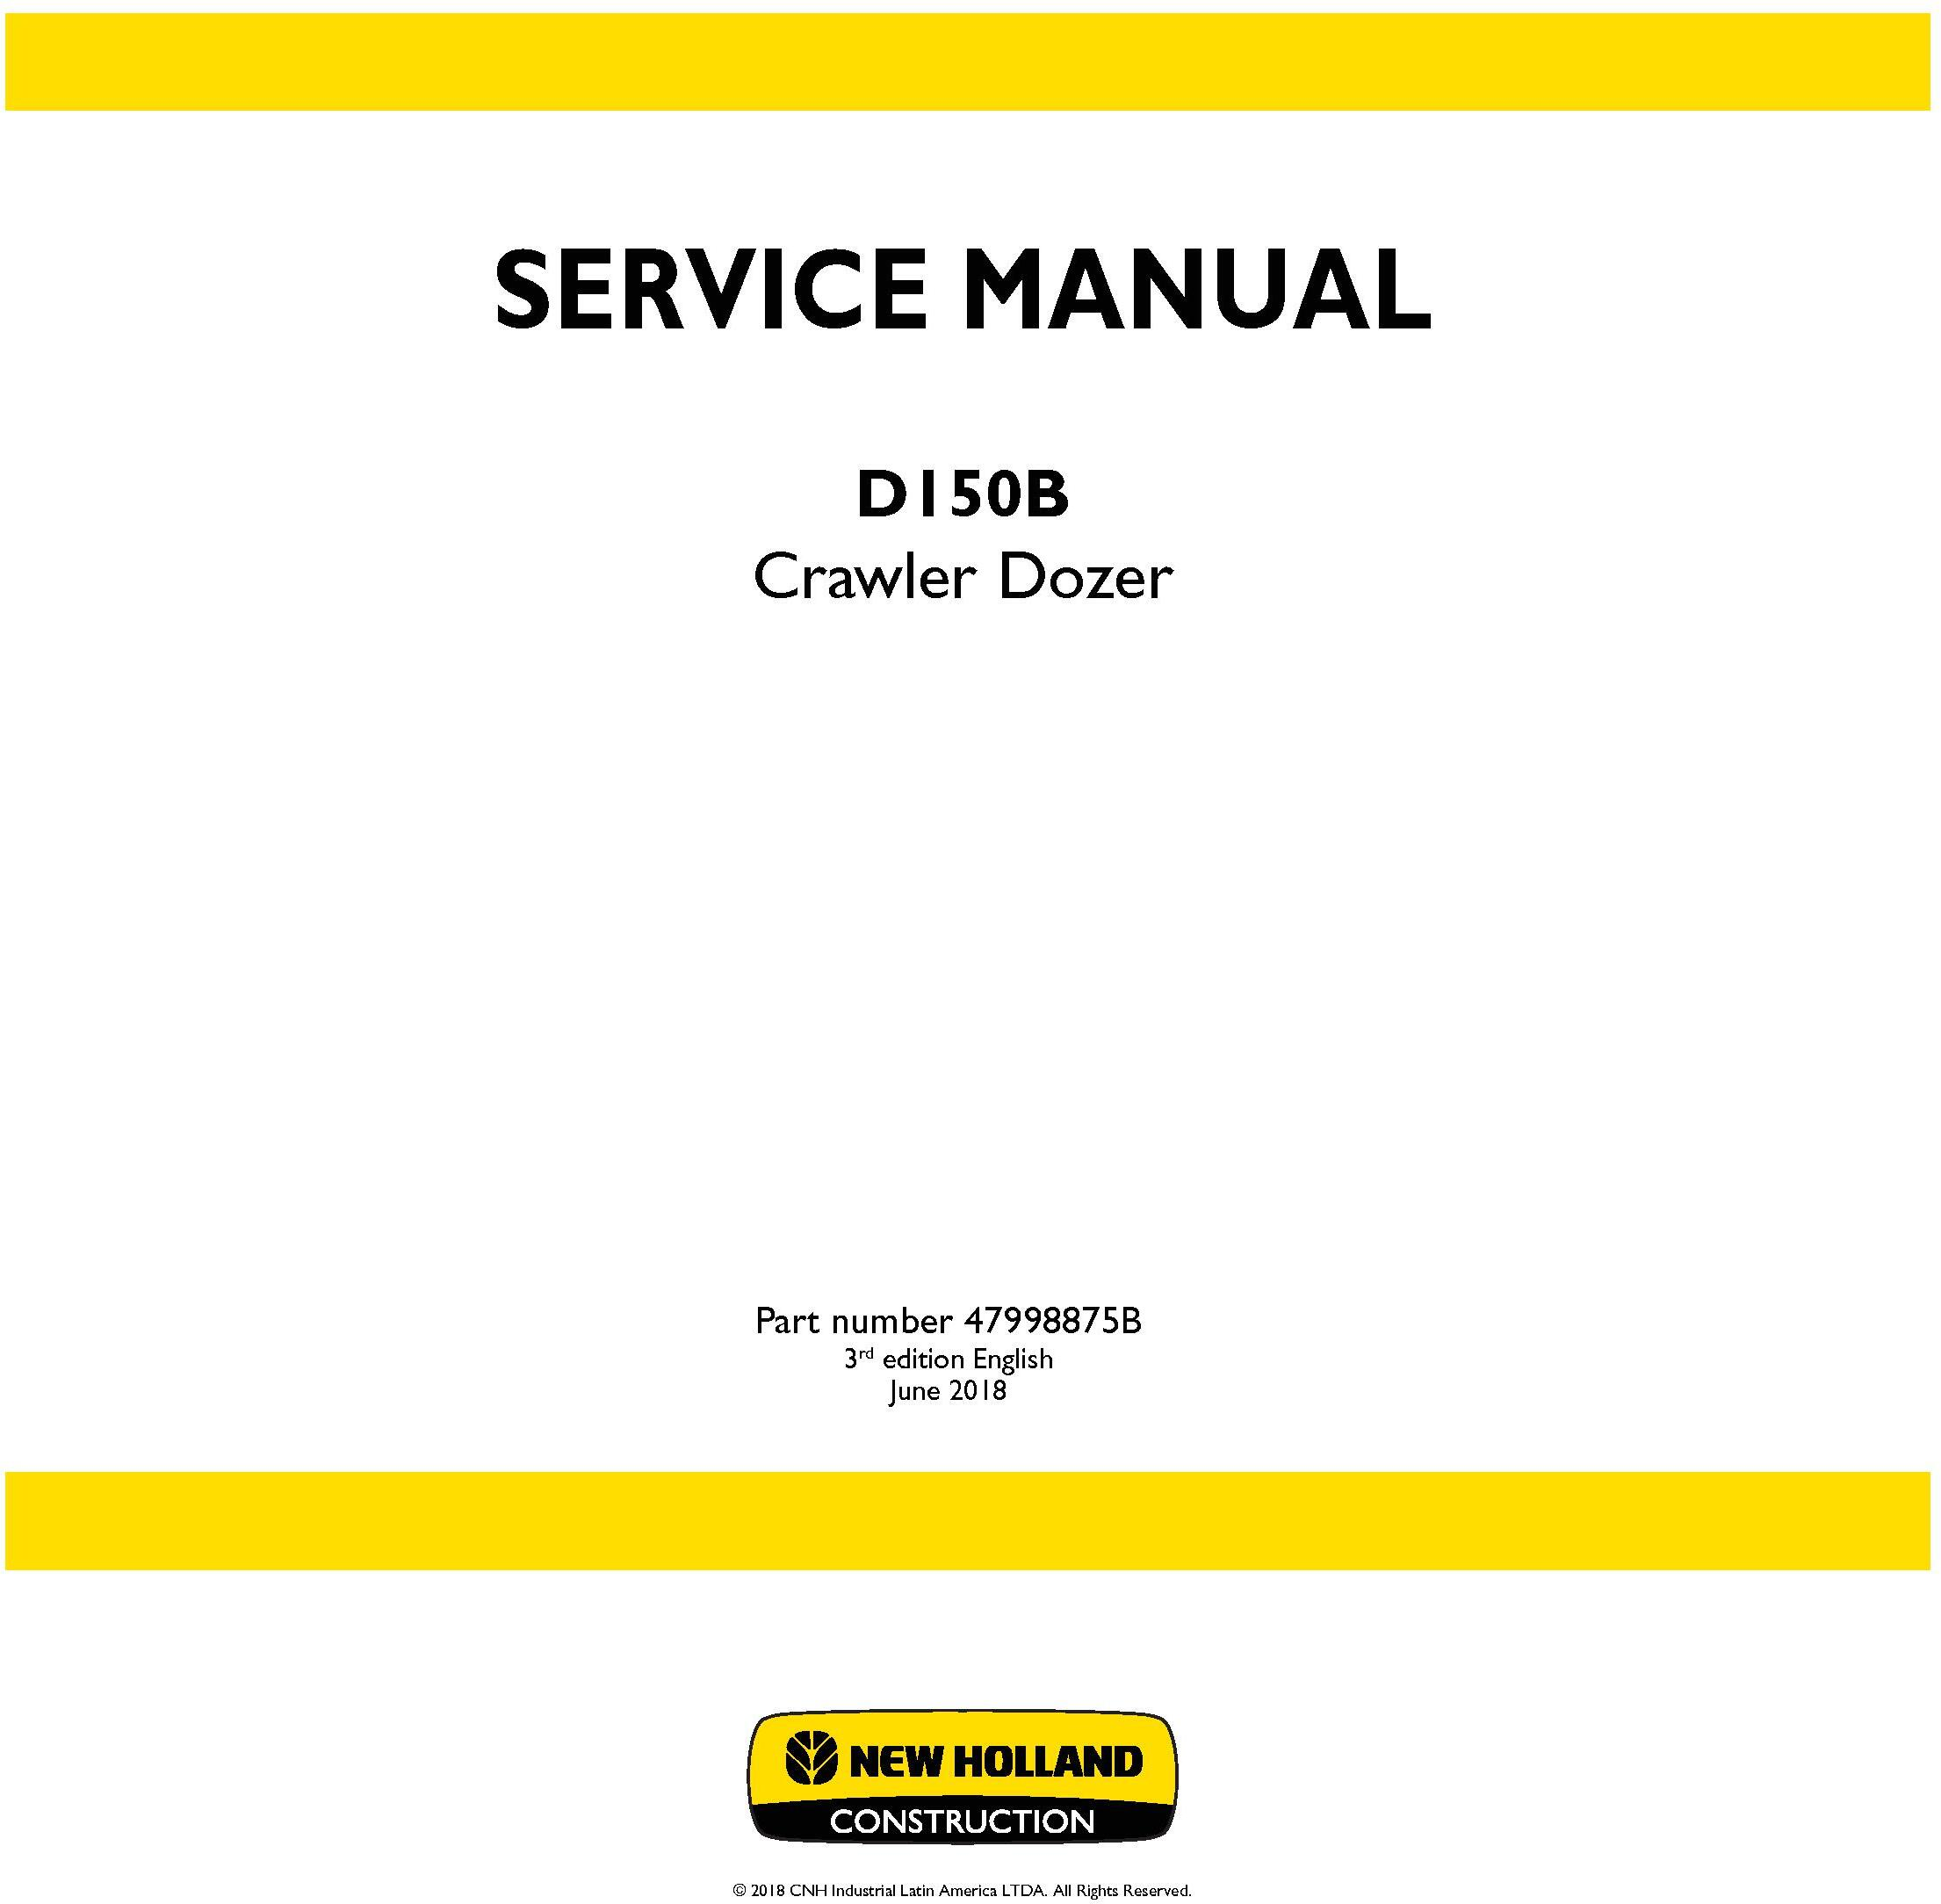 New Holland D150B XLT Crawler Dozer Service Manual (Brasil) - 19645